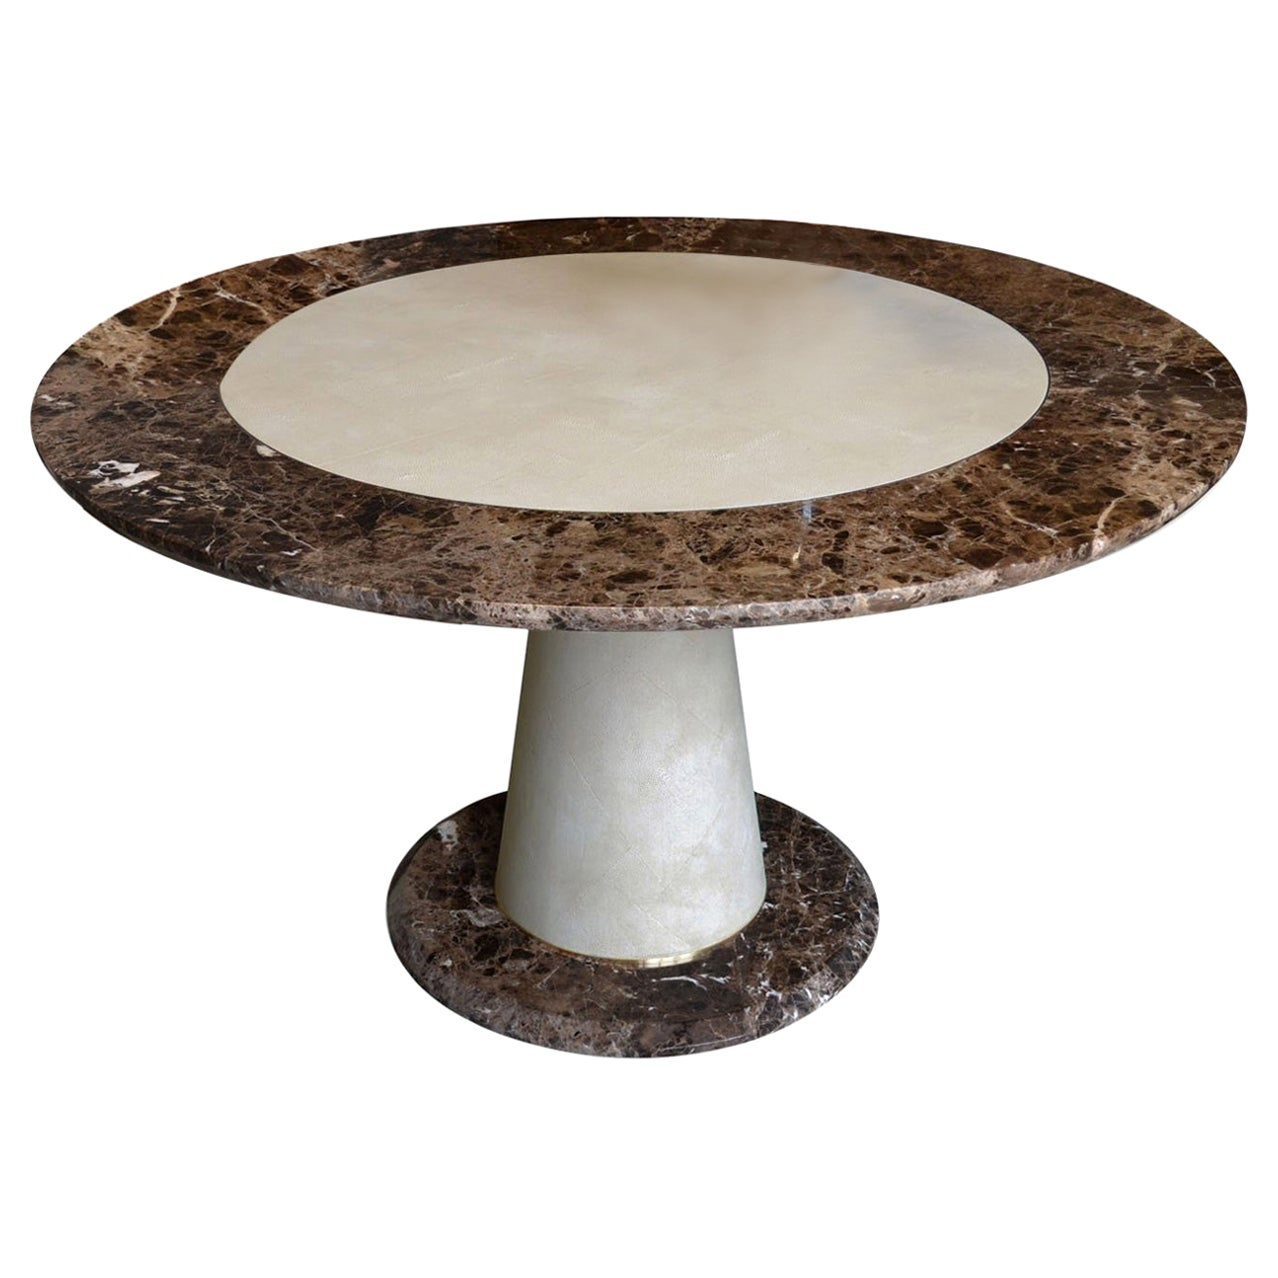 Modern Brown marble Round Dining Table  Scagliola Shagreen Decoration handmade